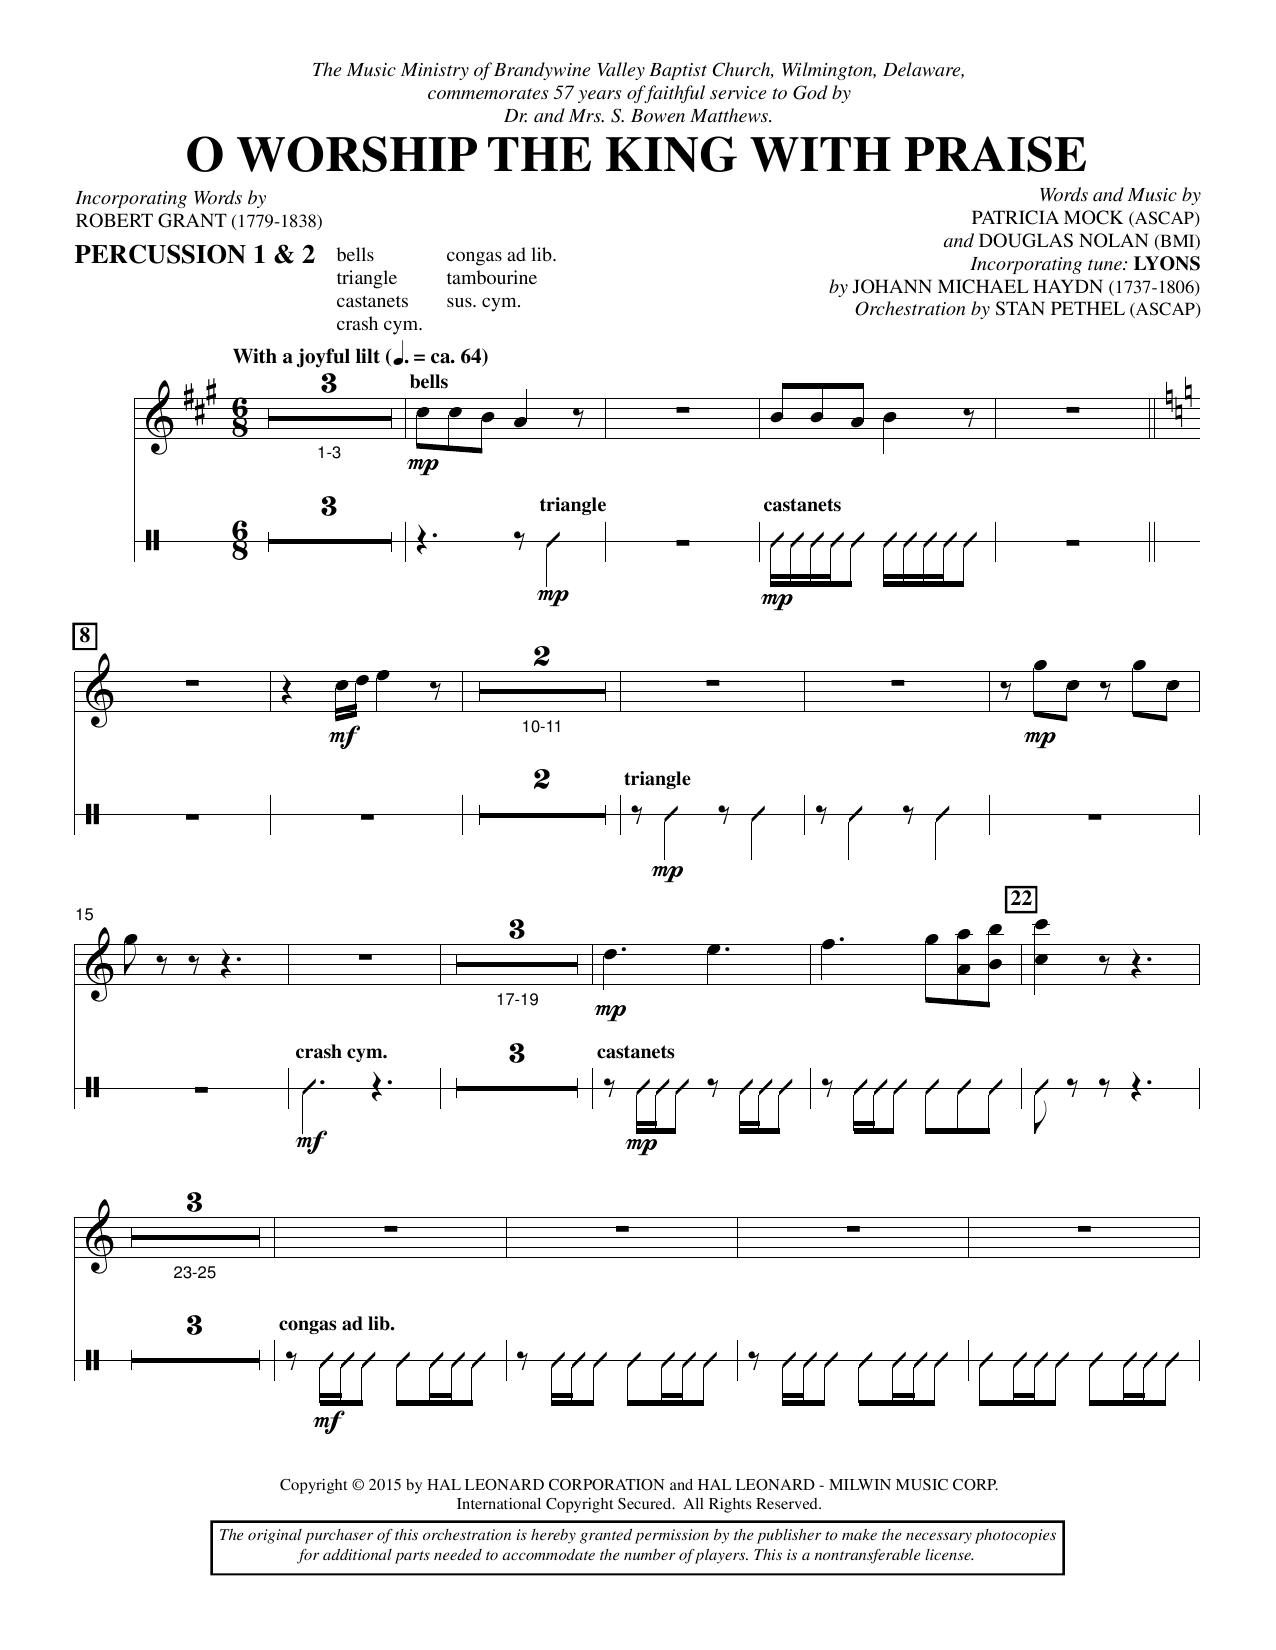 O Worship the King with Praise - Percussion 1 & 2 sheet music